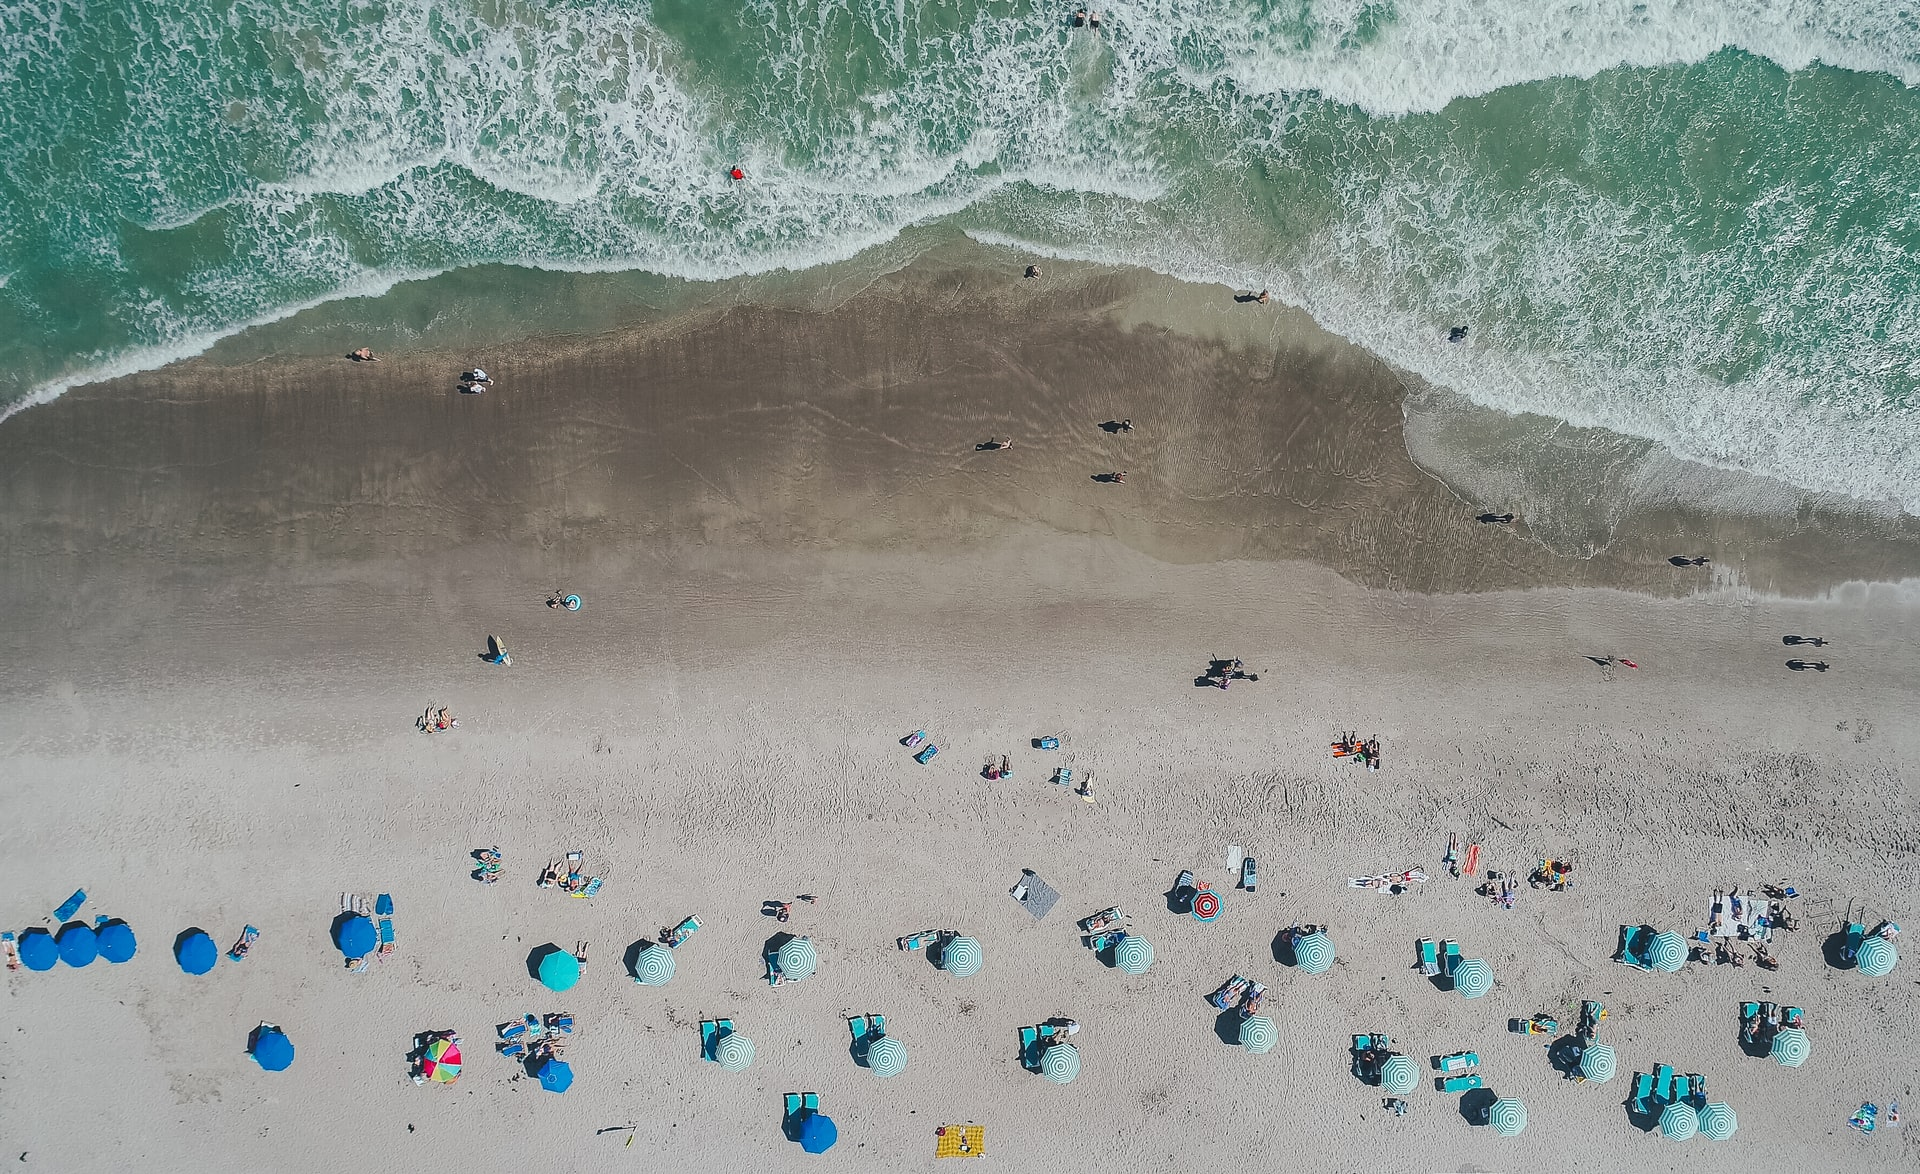 cocoa beach viewed from above with lots of parasols and waves